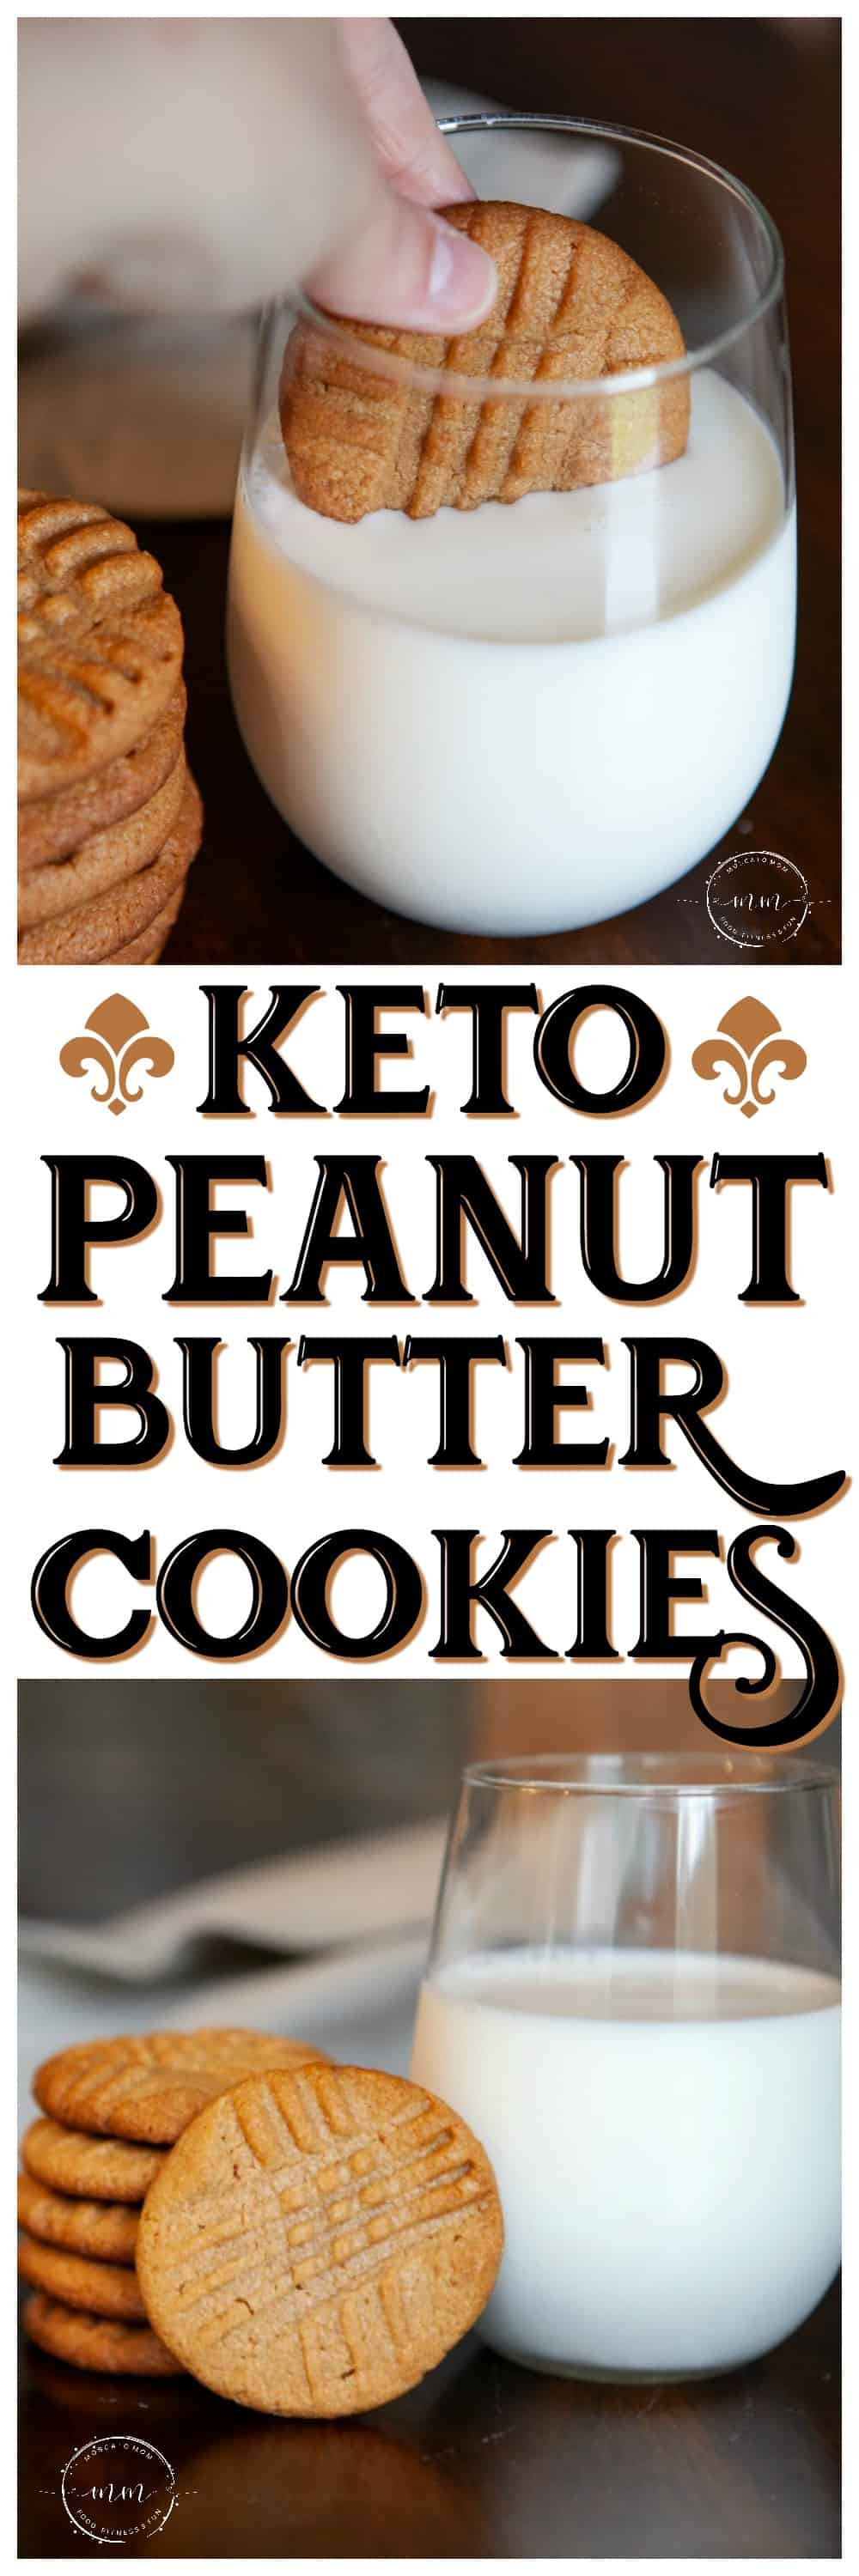 Keto Cookies Peanut Butter  Easy Three Ingre nt Keto Peanut Butter Cookies